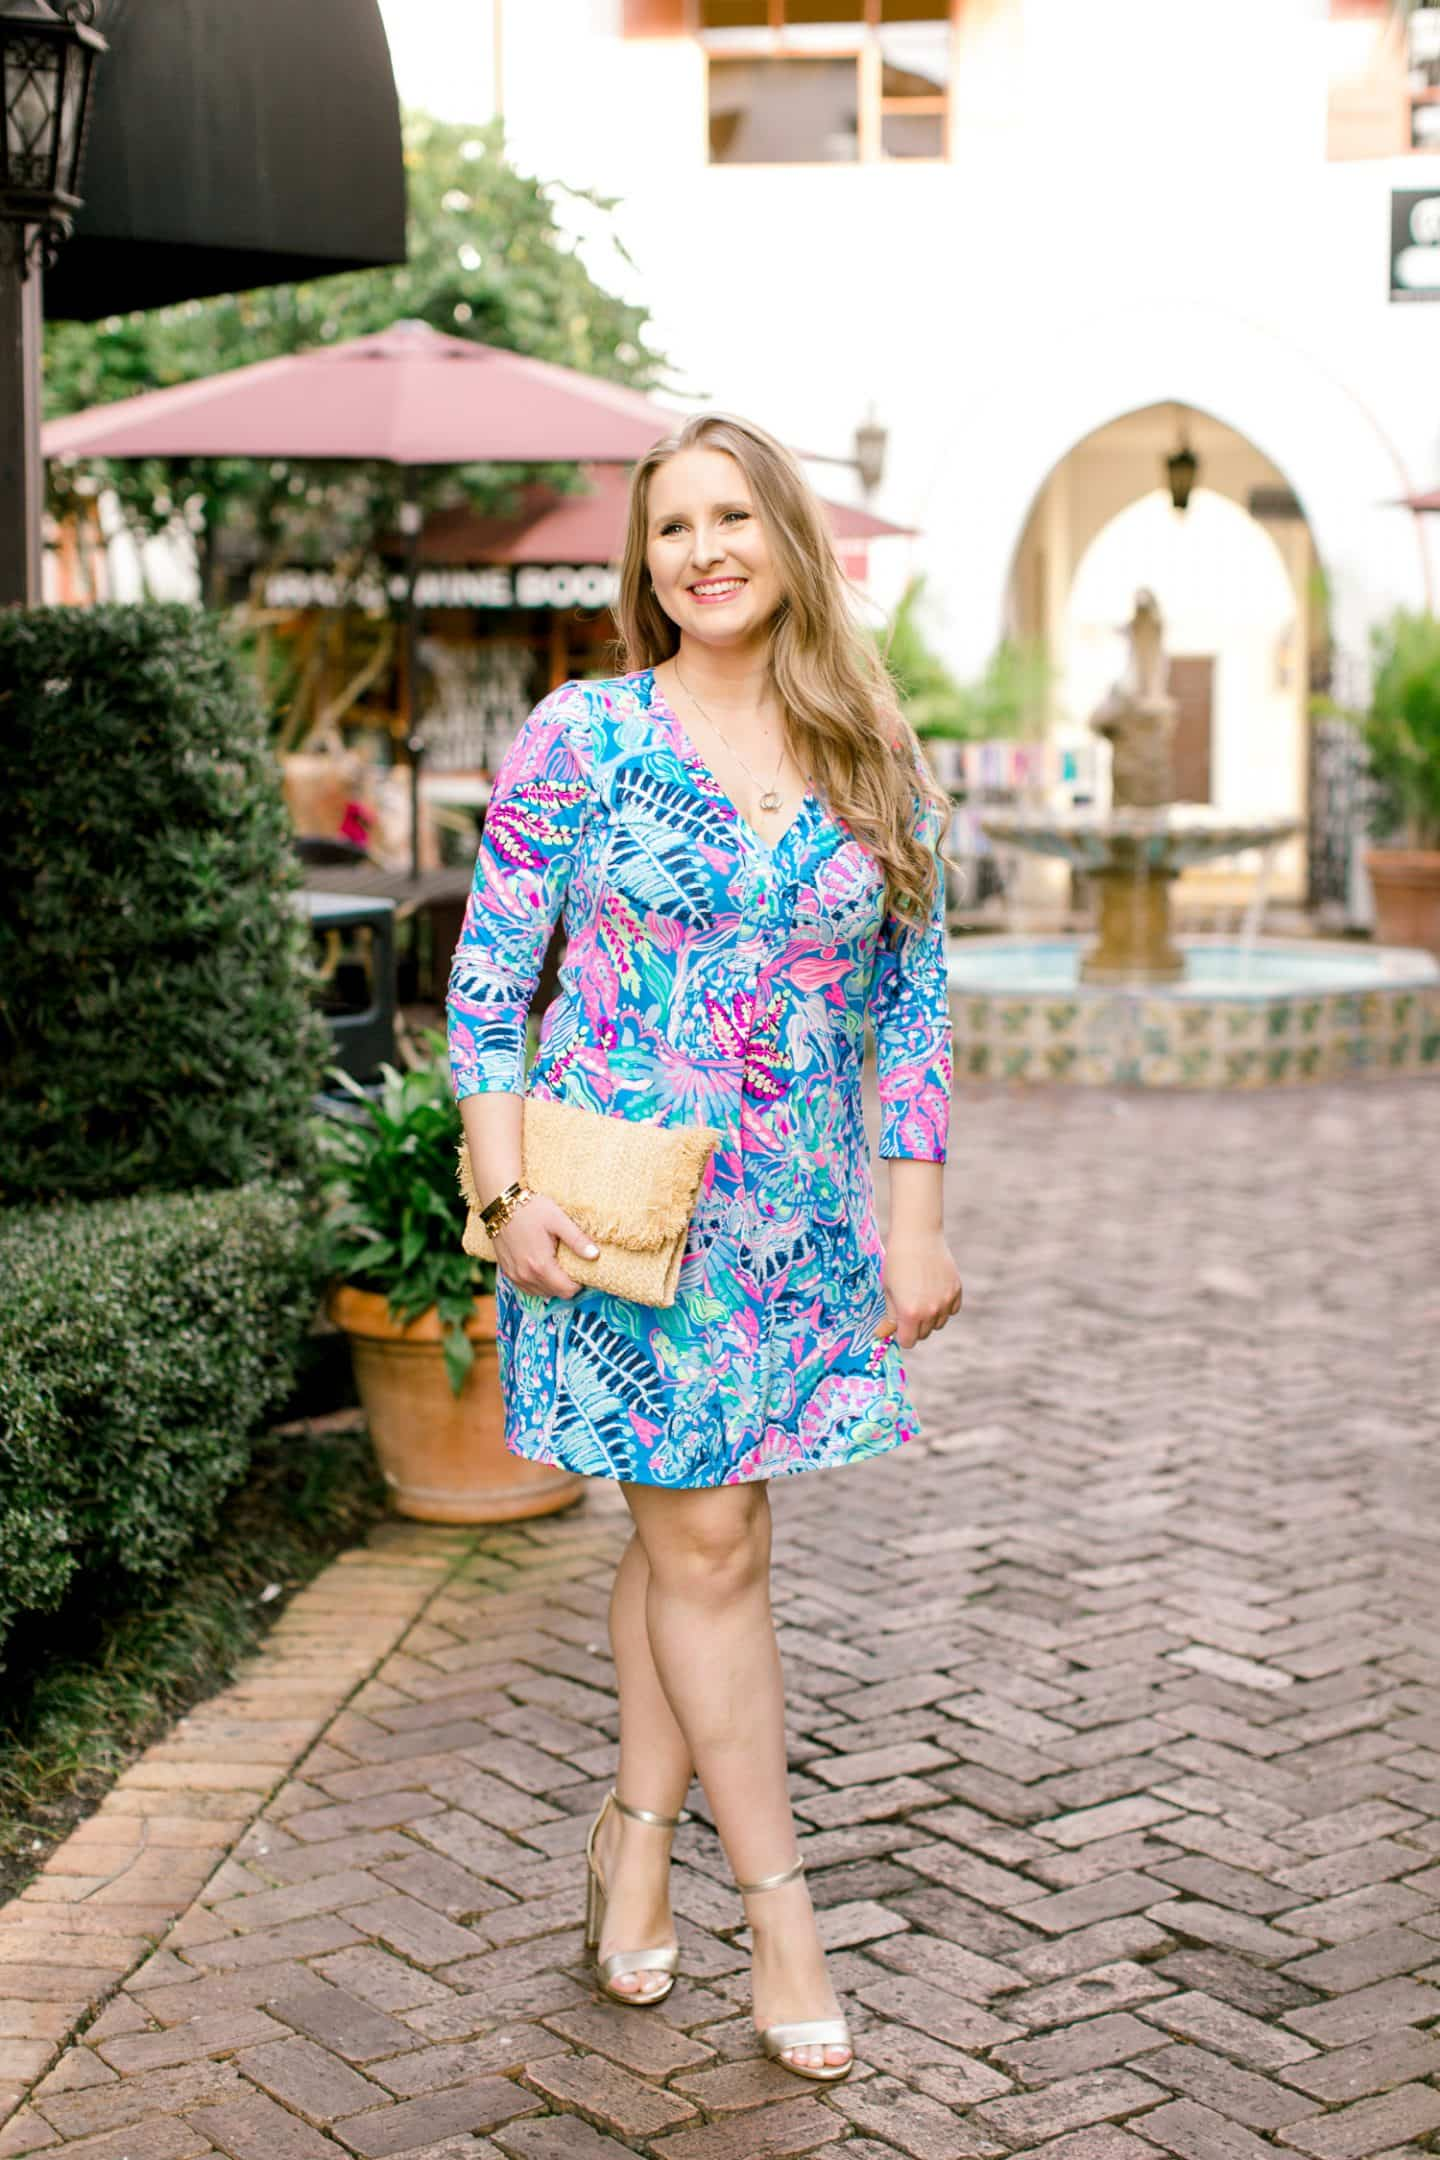 dc2d4798b96442 While I couldn't find an exact match for Summer's dress, the Lilly Pulitzer  Amina Dress in Multi-Fantasy Garden is pretty darn close, and it's quickly  ...